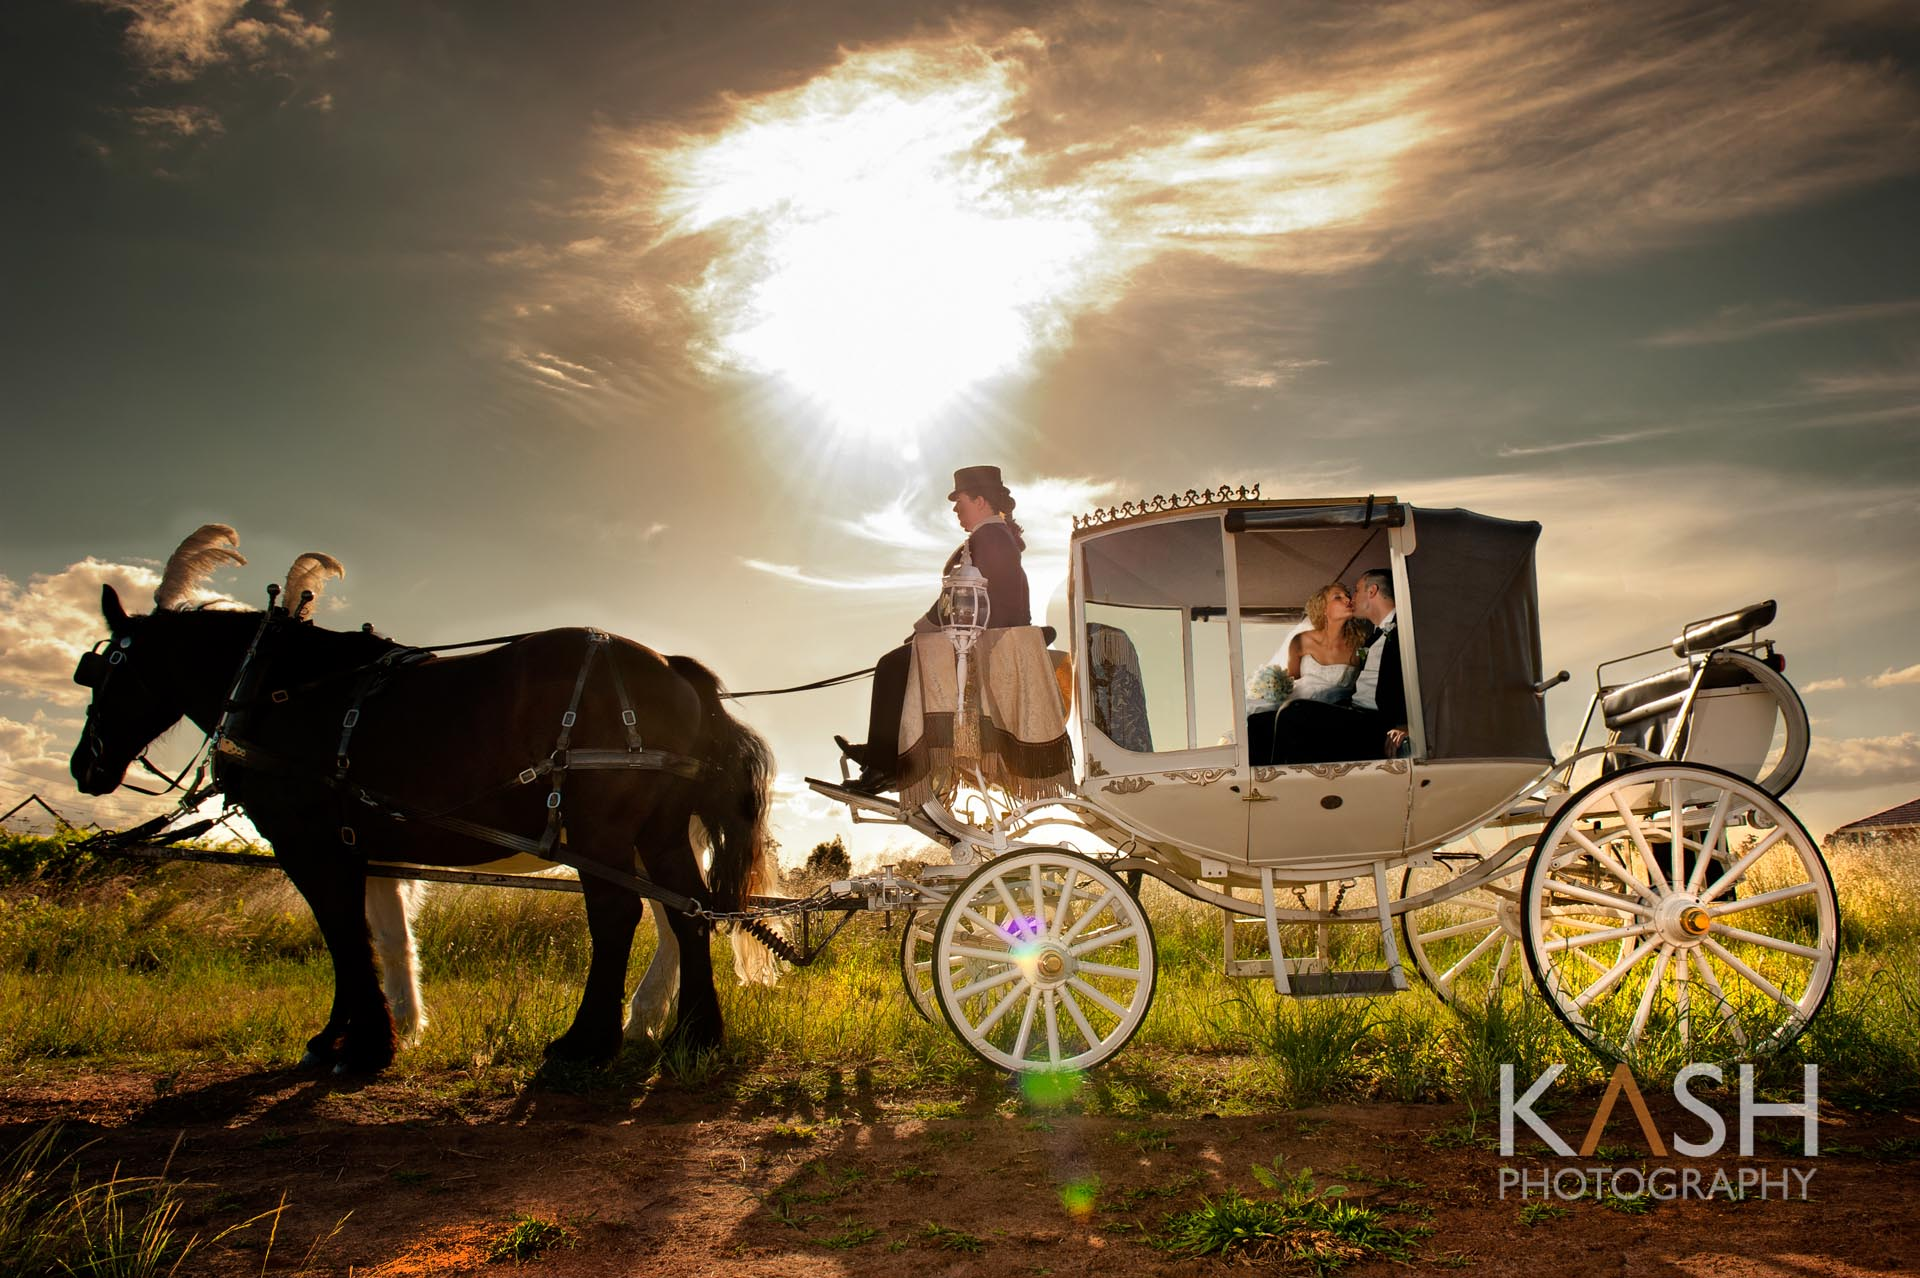 KASH PHOTOGRAPHY HORSE CARRIAGE